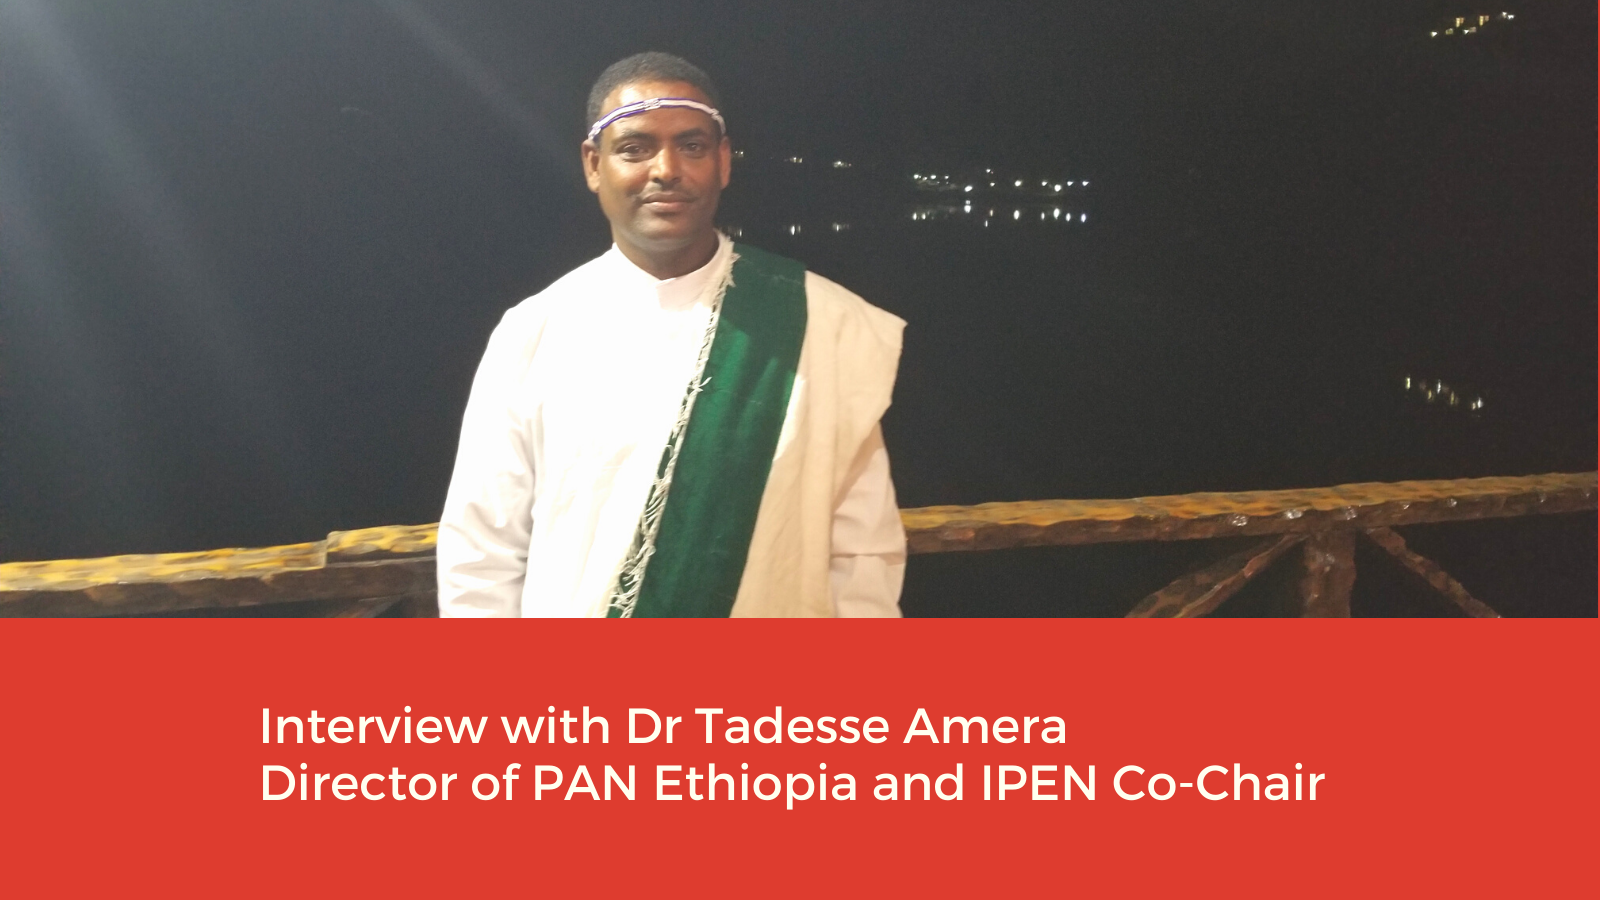 Interview with Dr. Tadesse Amera –  Director of PAN Ethiopia and Co-Chair of IPEN